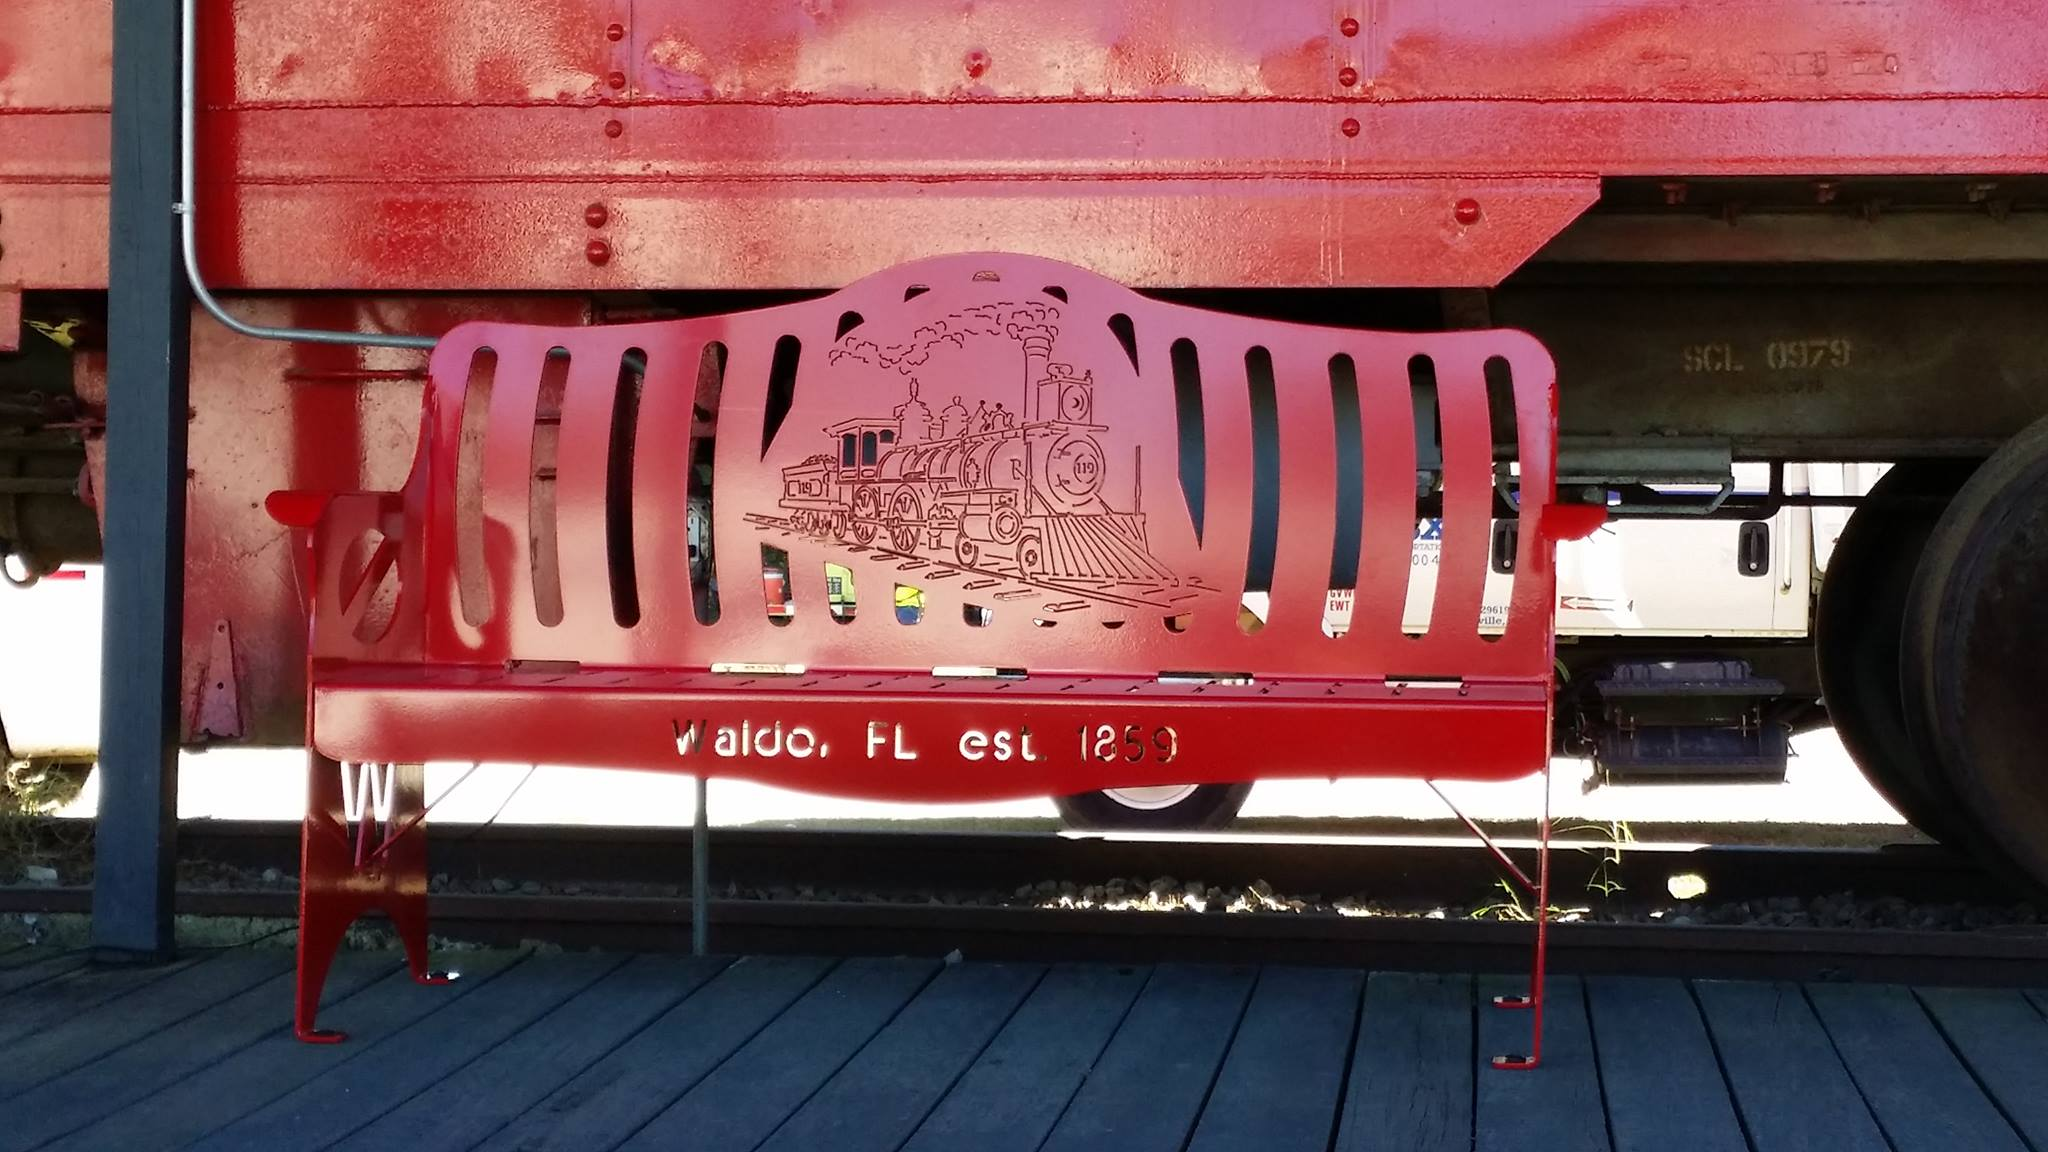 Waldo Florida Train Bench